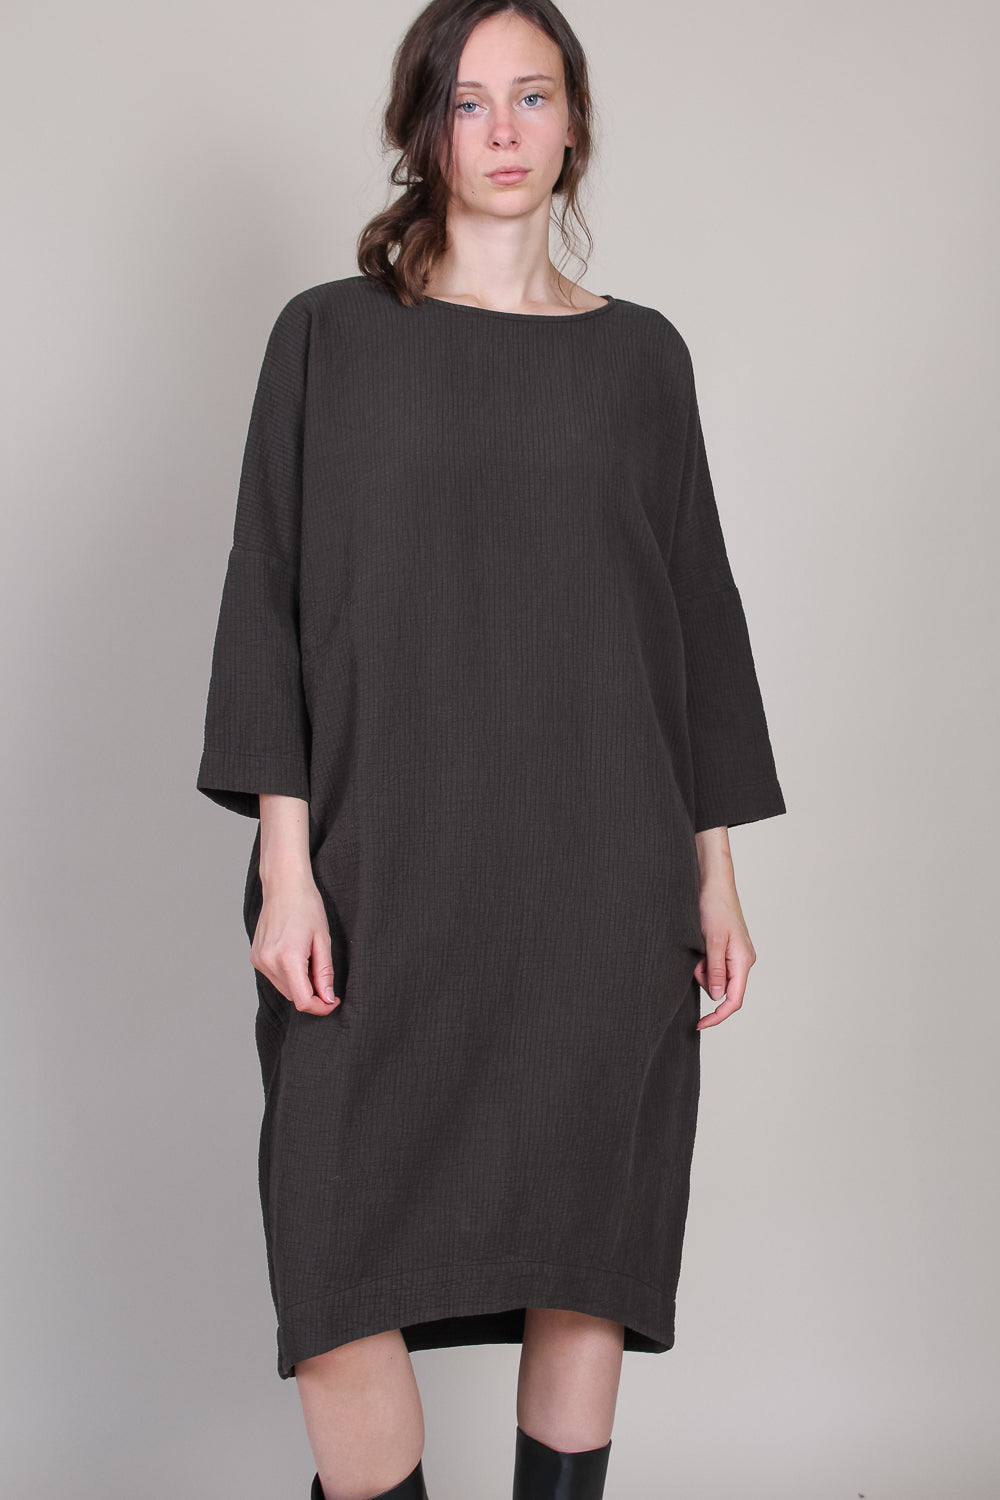 Bud Dress in Dark Grey